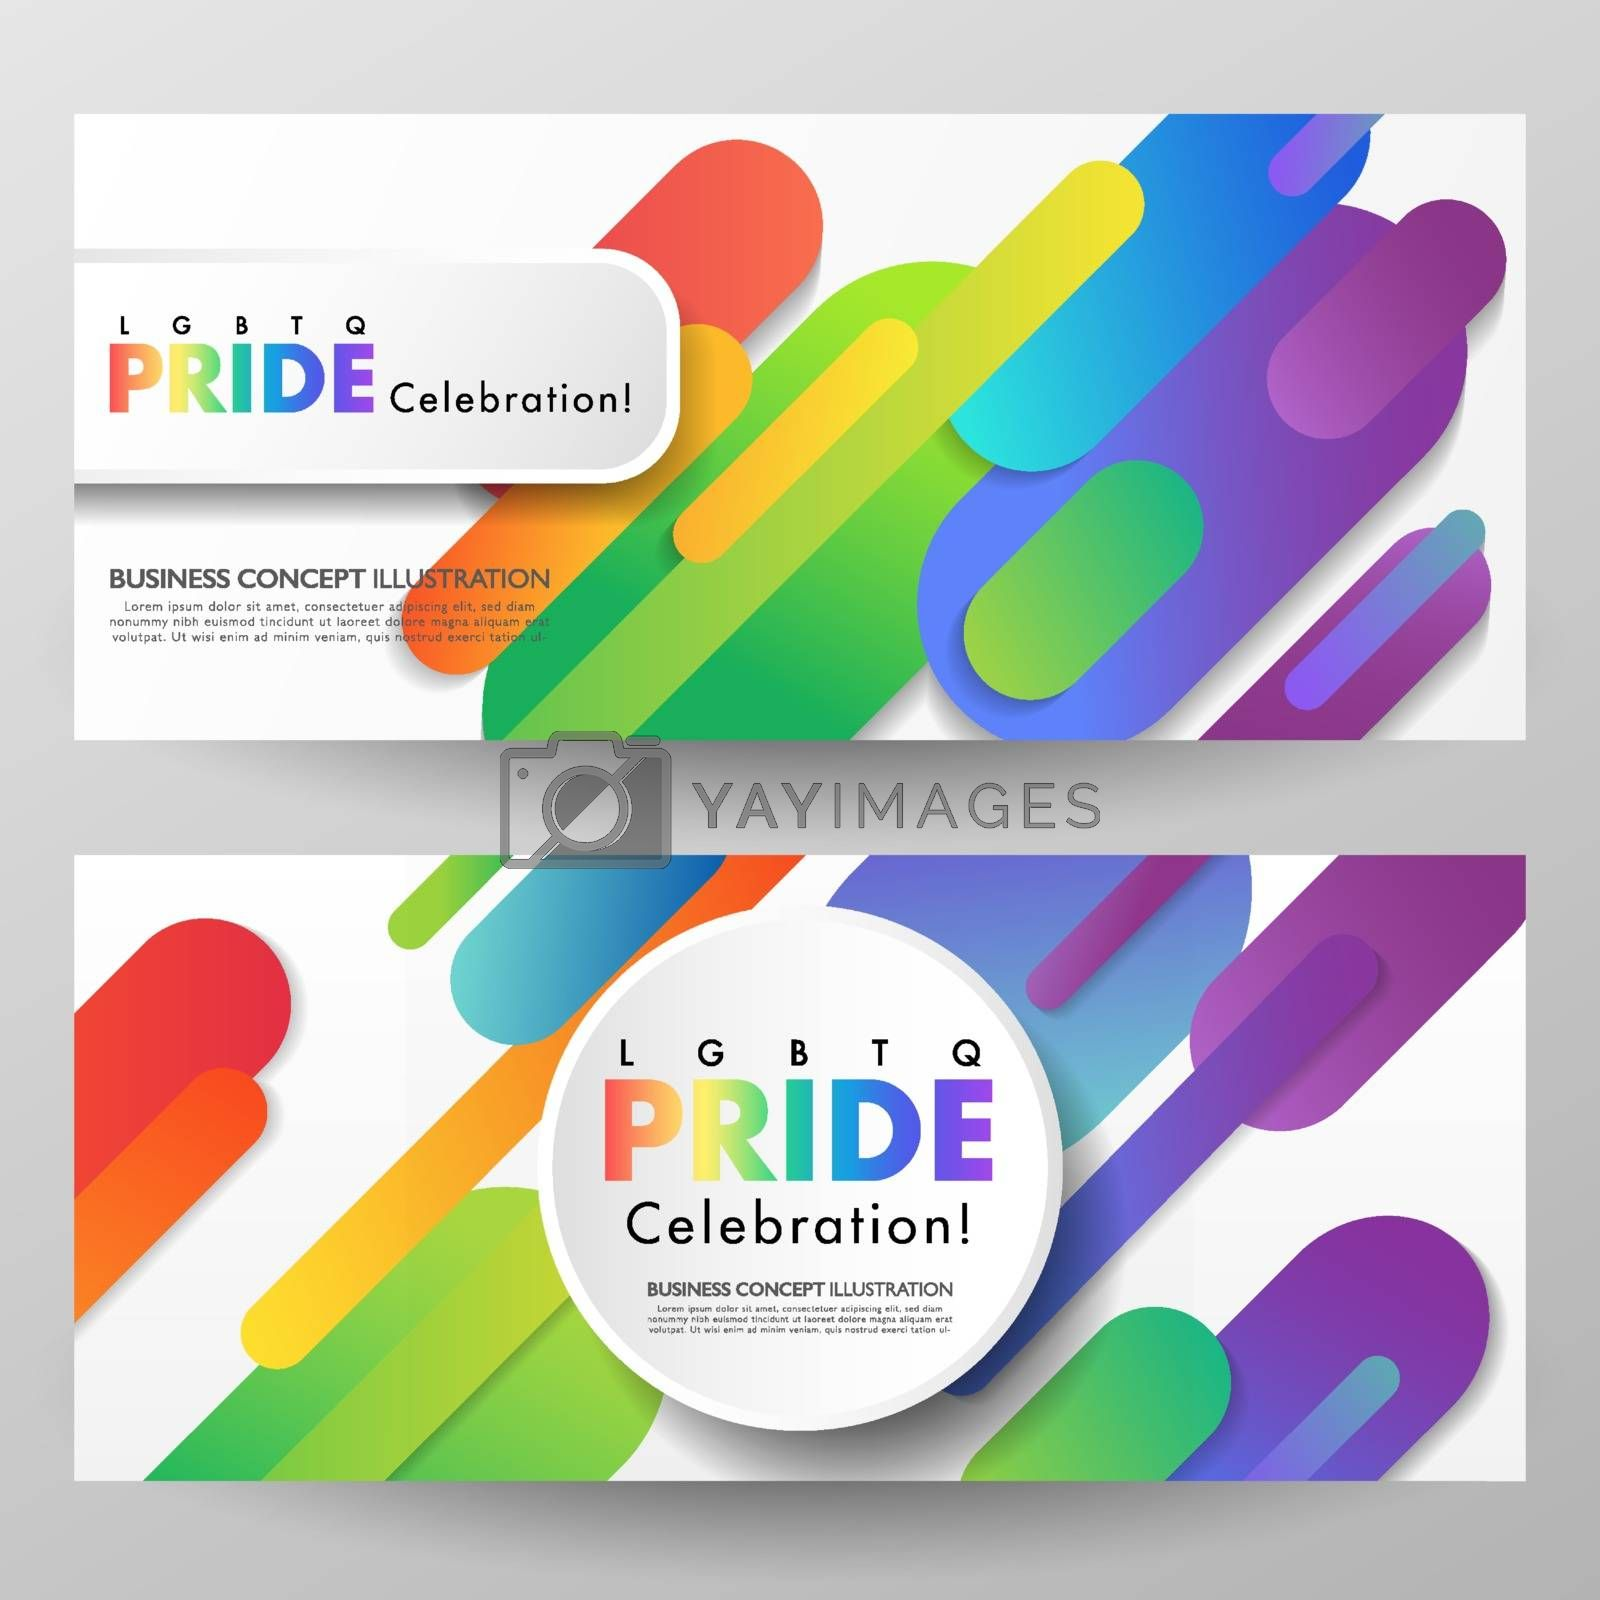 Colorful LGBTQ pride celebration banner set of two. Abstract rainbow geometric round objects on white background. Vector illustration template.